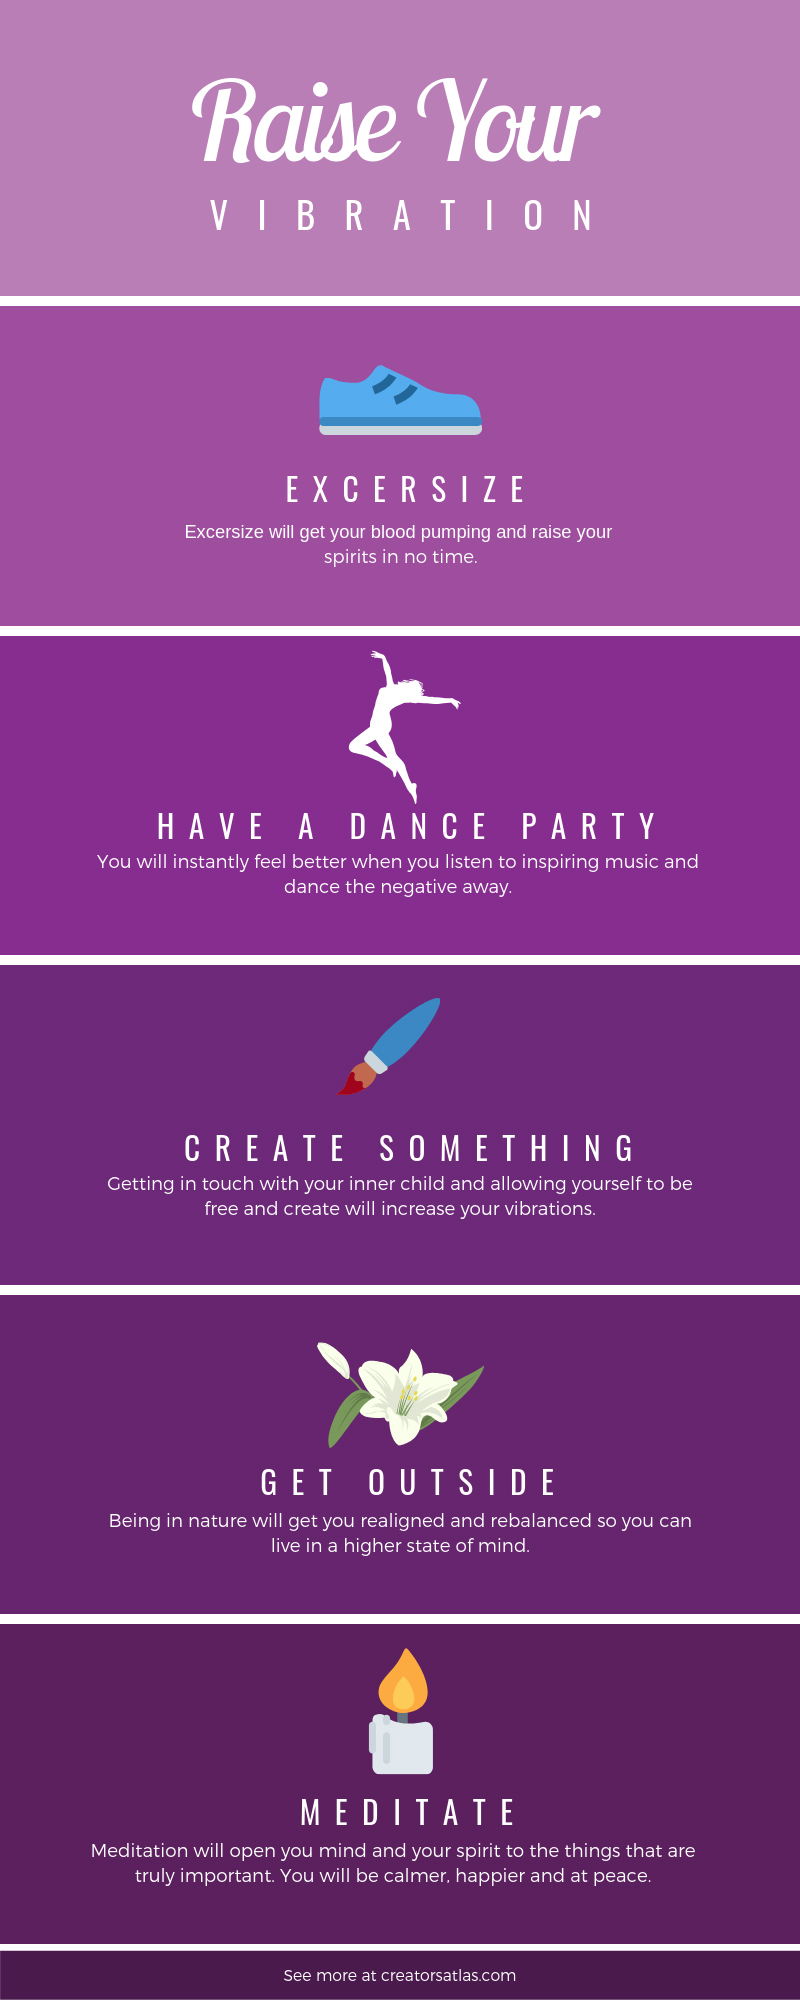 Raise your vibration and get your life back with these easy ideas. You will be back to your high vibe self in no time after practicing these tips.  #Raiseyourvibrations #highvibes #positivelife #howtoraiseyourvibrations